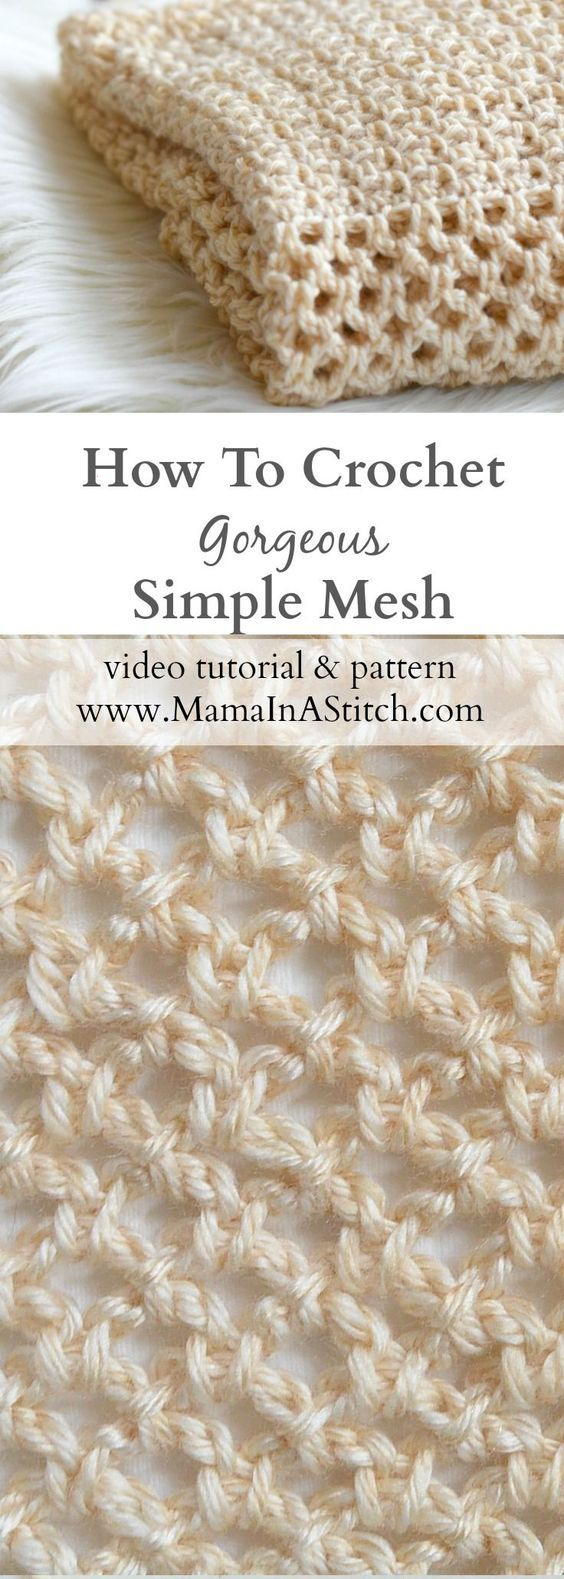 Photo of How To Crochet An Easy Mesh Stitch